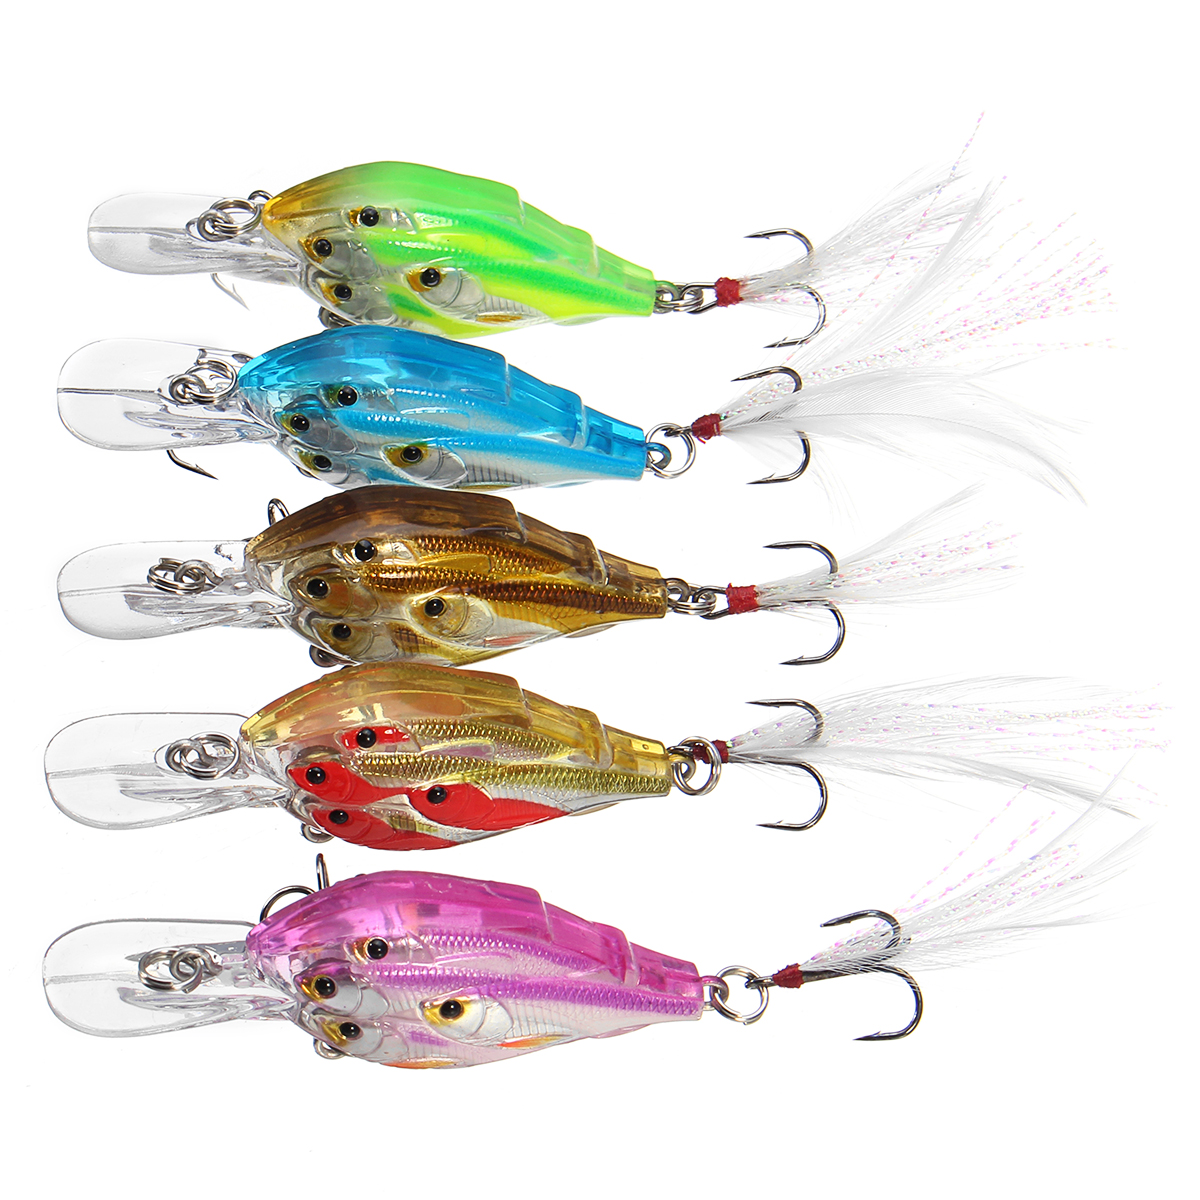 ZANLURE 5Pcs/Set 7cm 6.2g Fishing Lure Crankbaits Hook